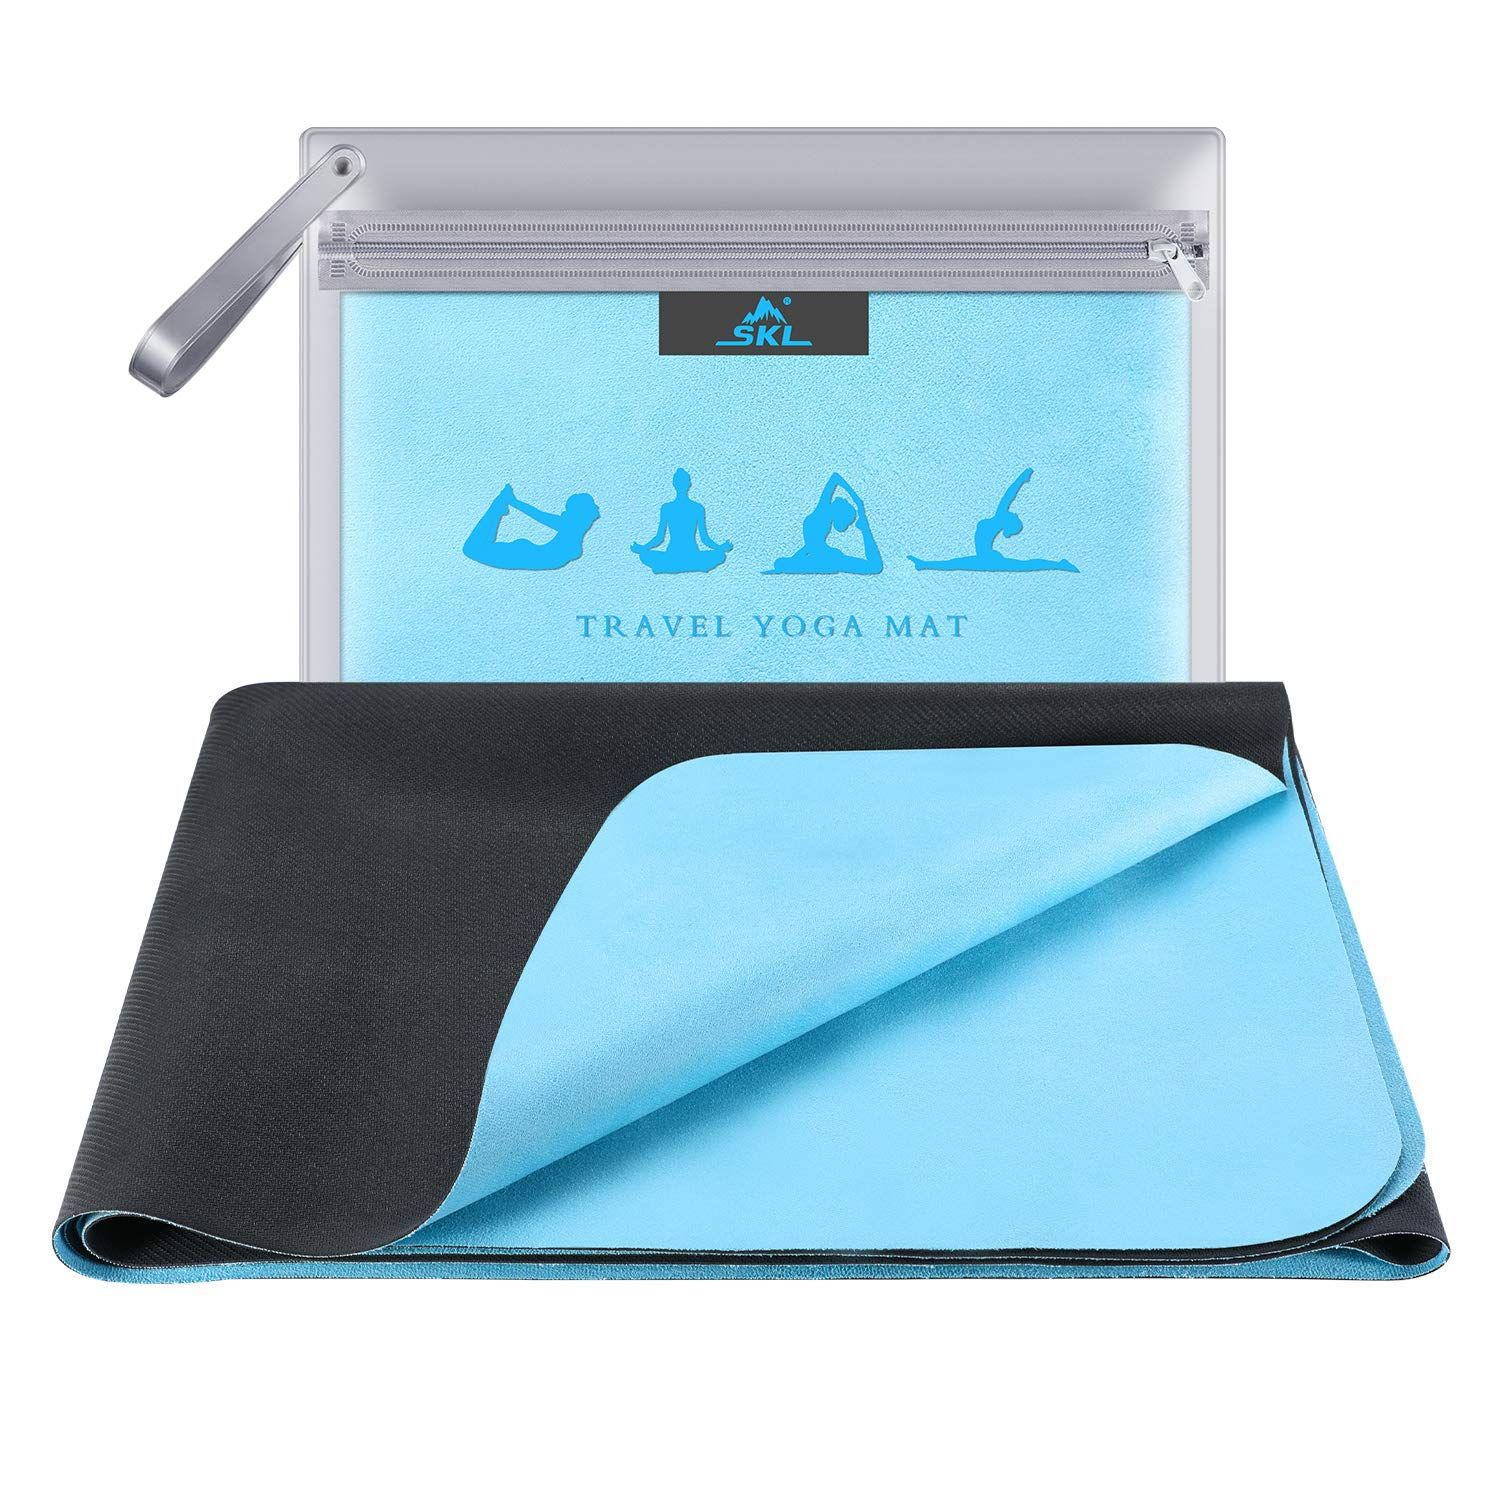 Skl Travel Yoga Mat Foldable 1 16 Inch Thin Hot Yoga Mat Non Slip Sweat Absorbent Fitness In 2020 Travel Yoga Mat Hot Yoga Mat Floor Workouts